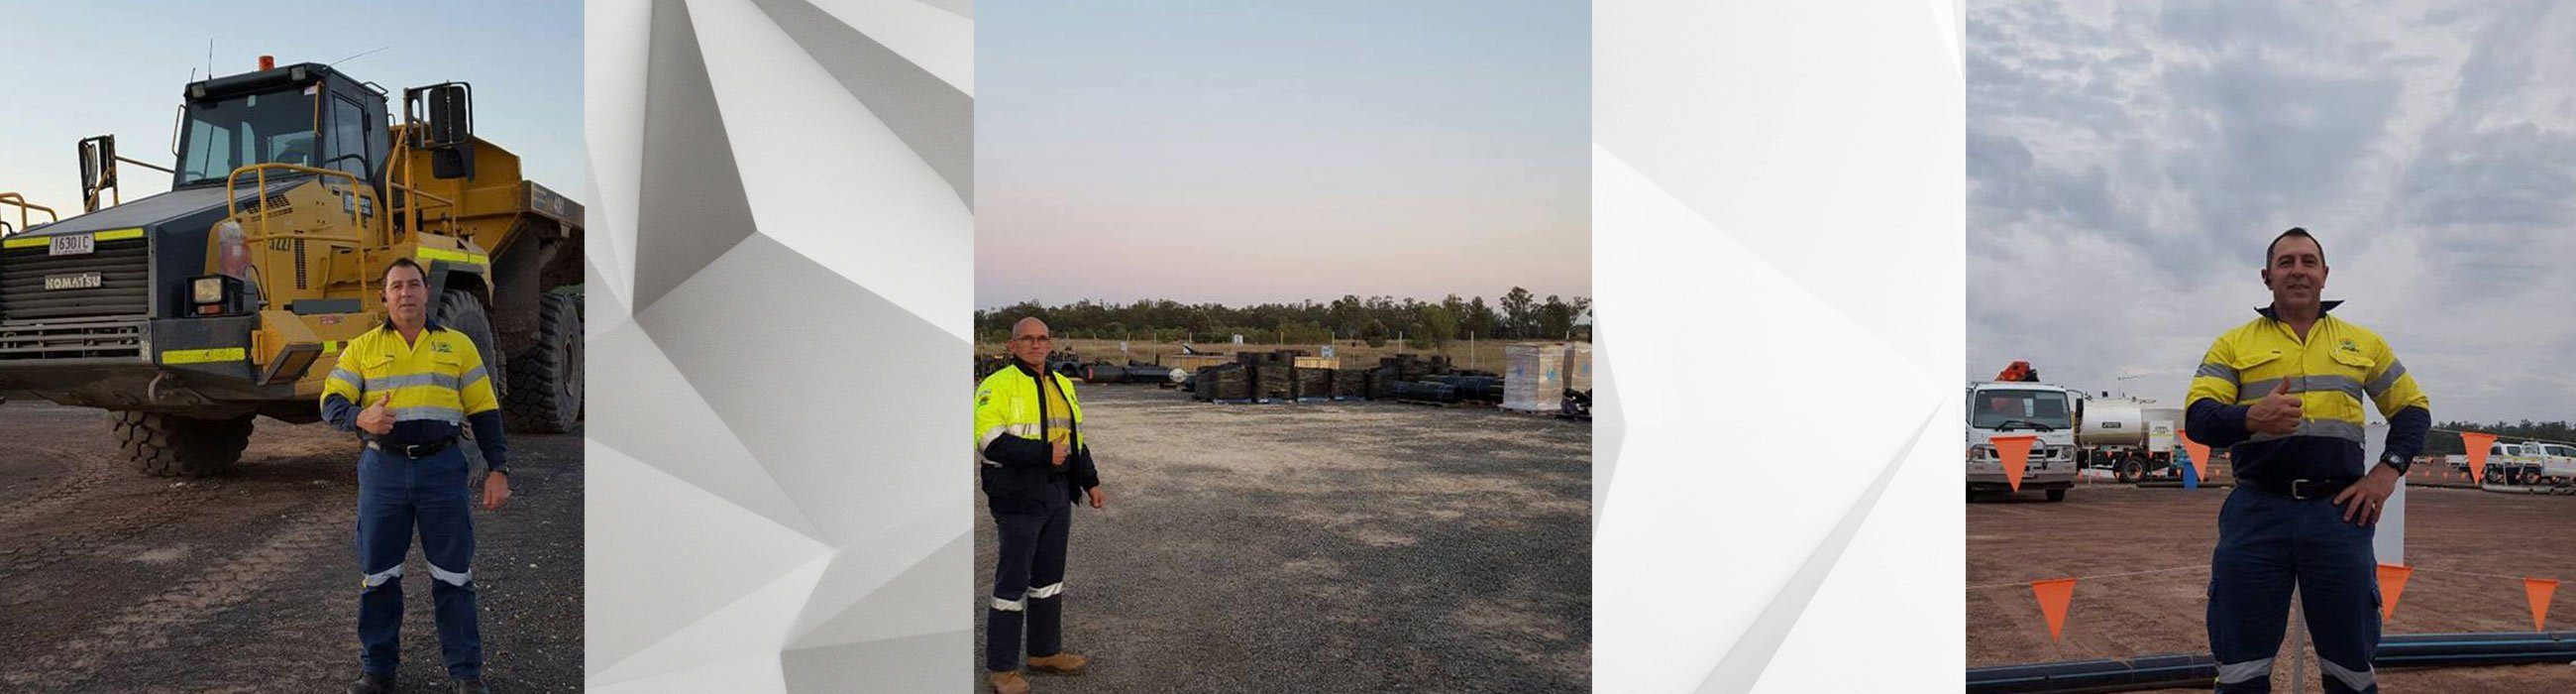 ironbark security property safety guard in front of heavy vehicle